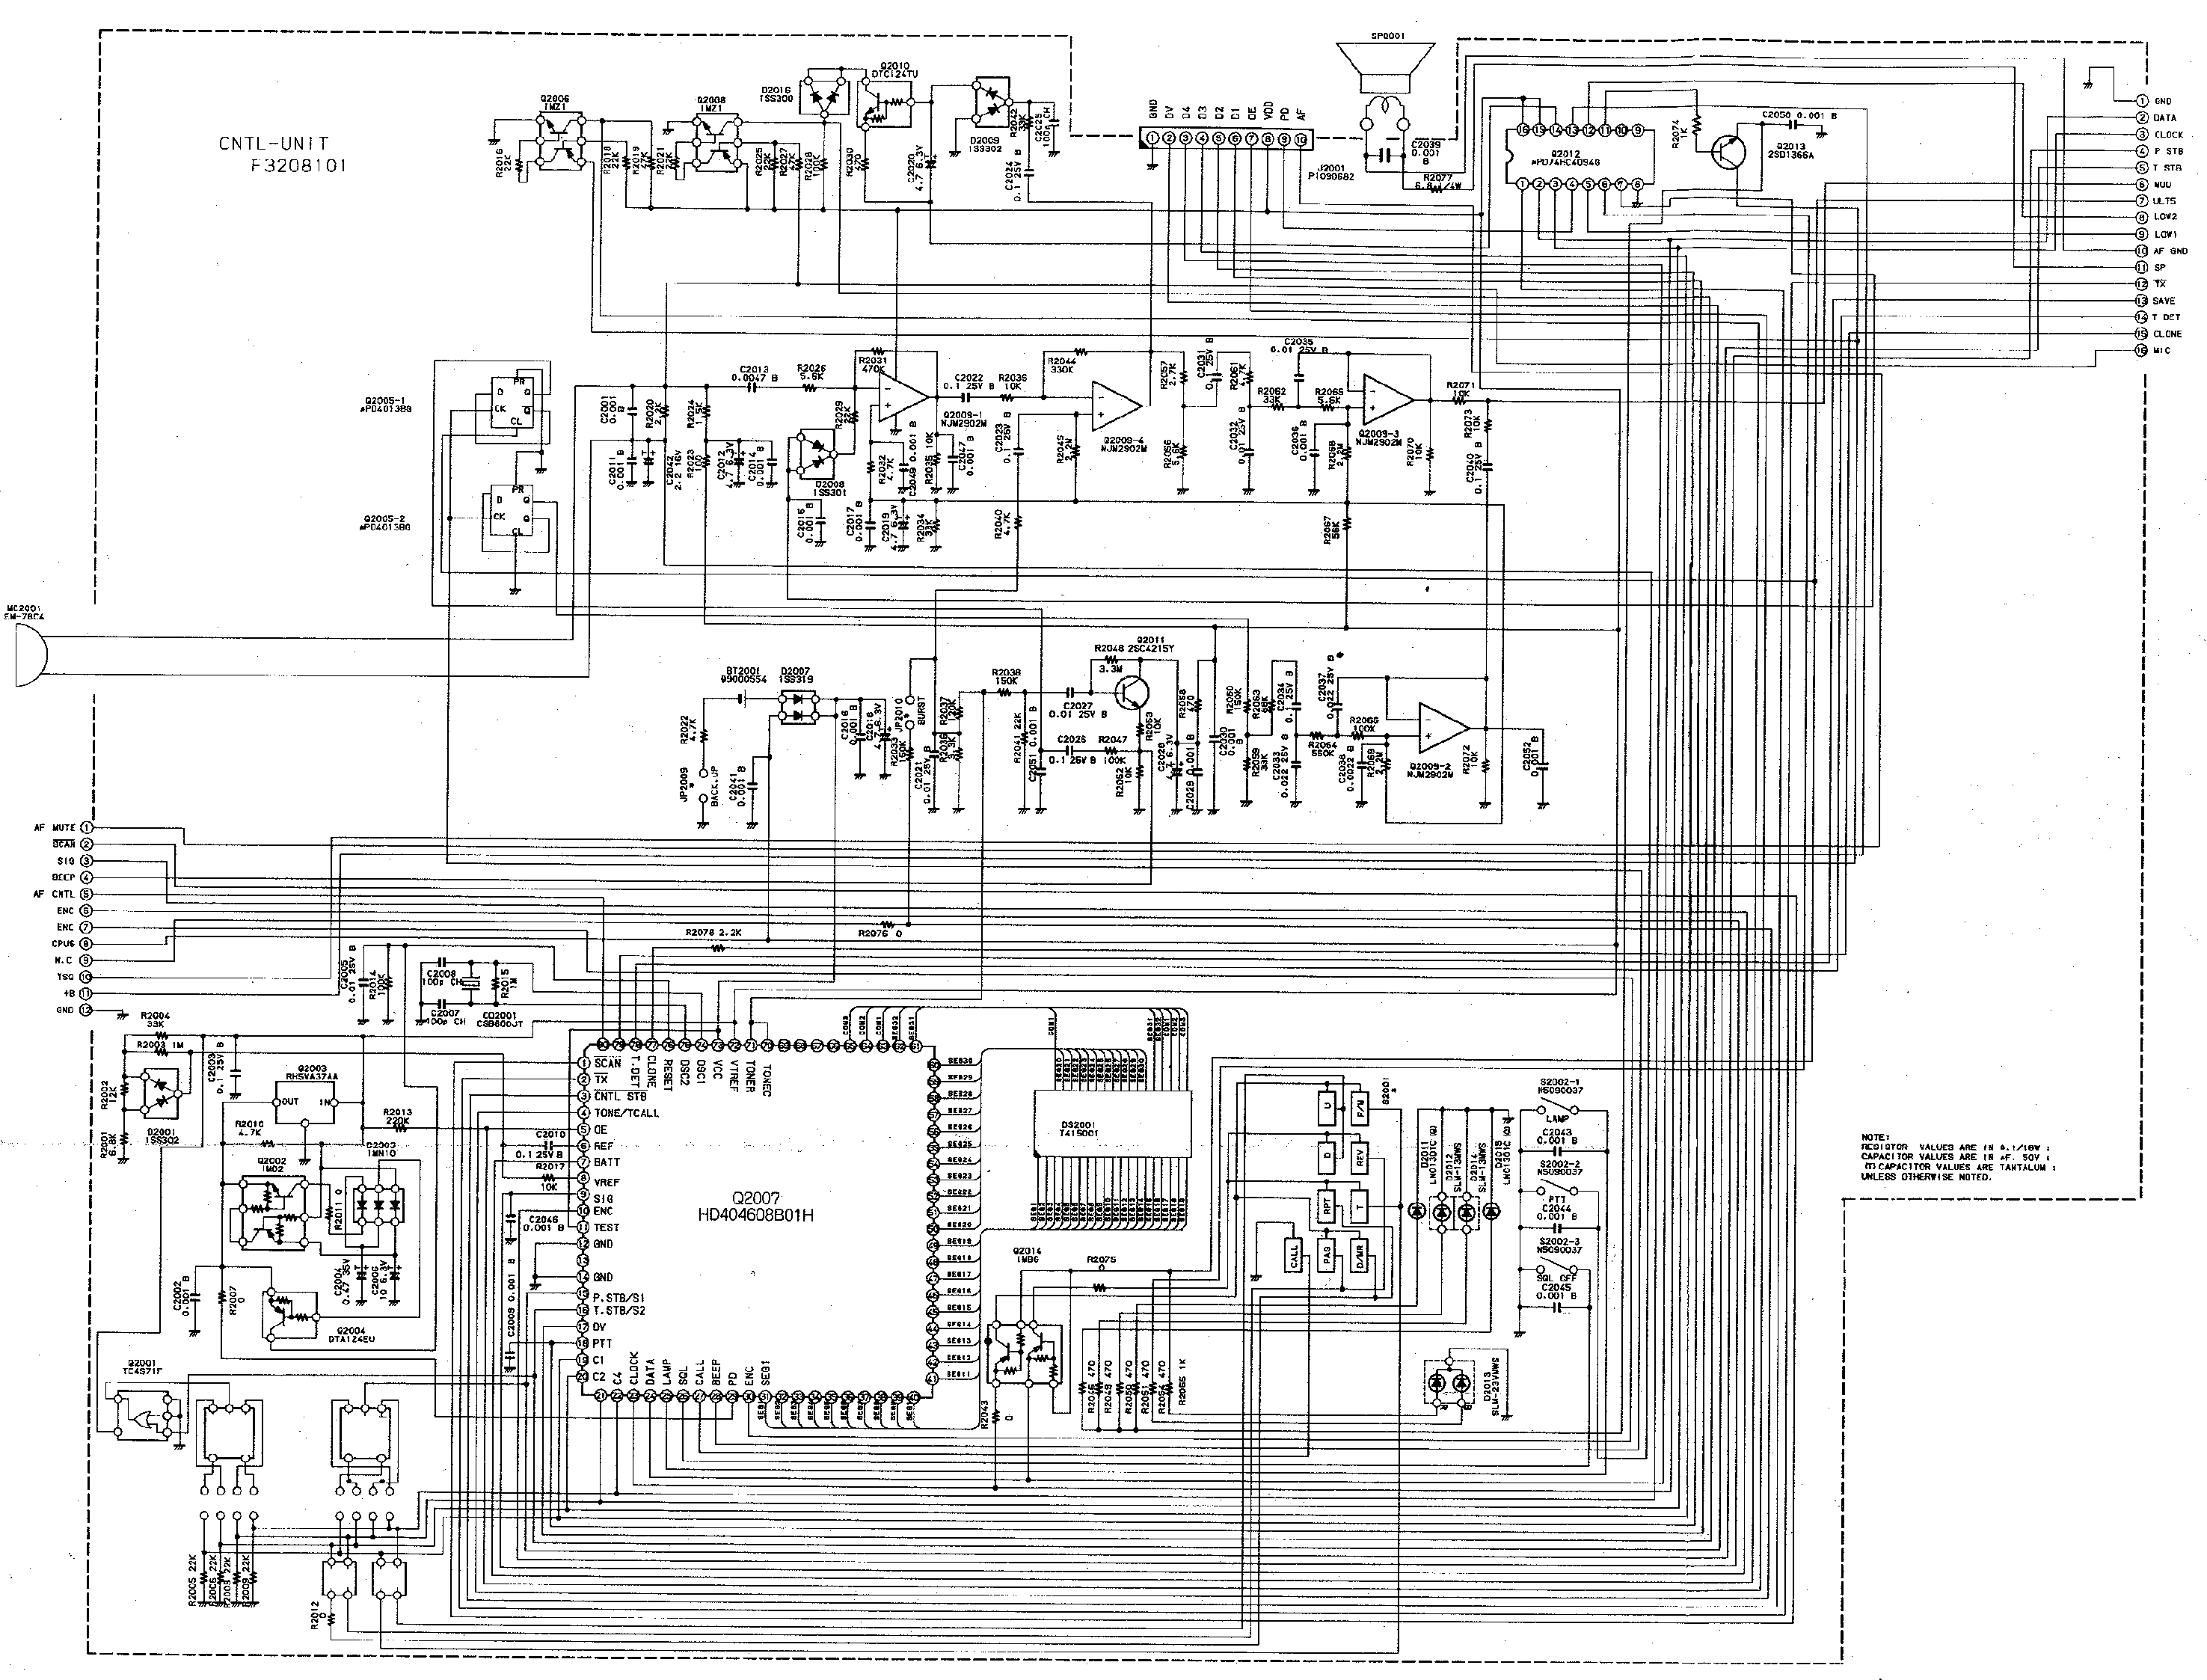 YAESU FT-26A Service Manual free download, schematics